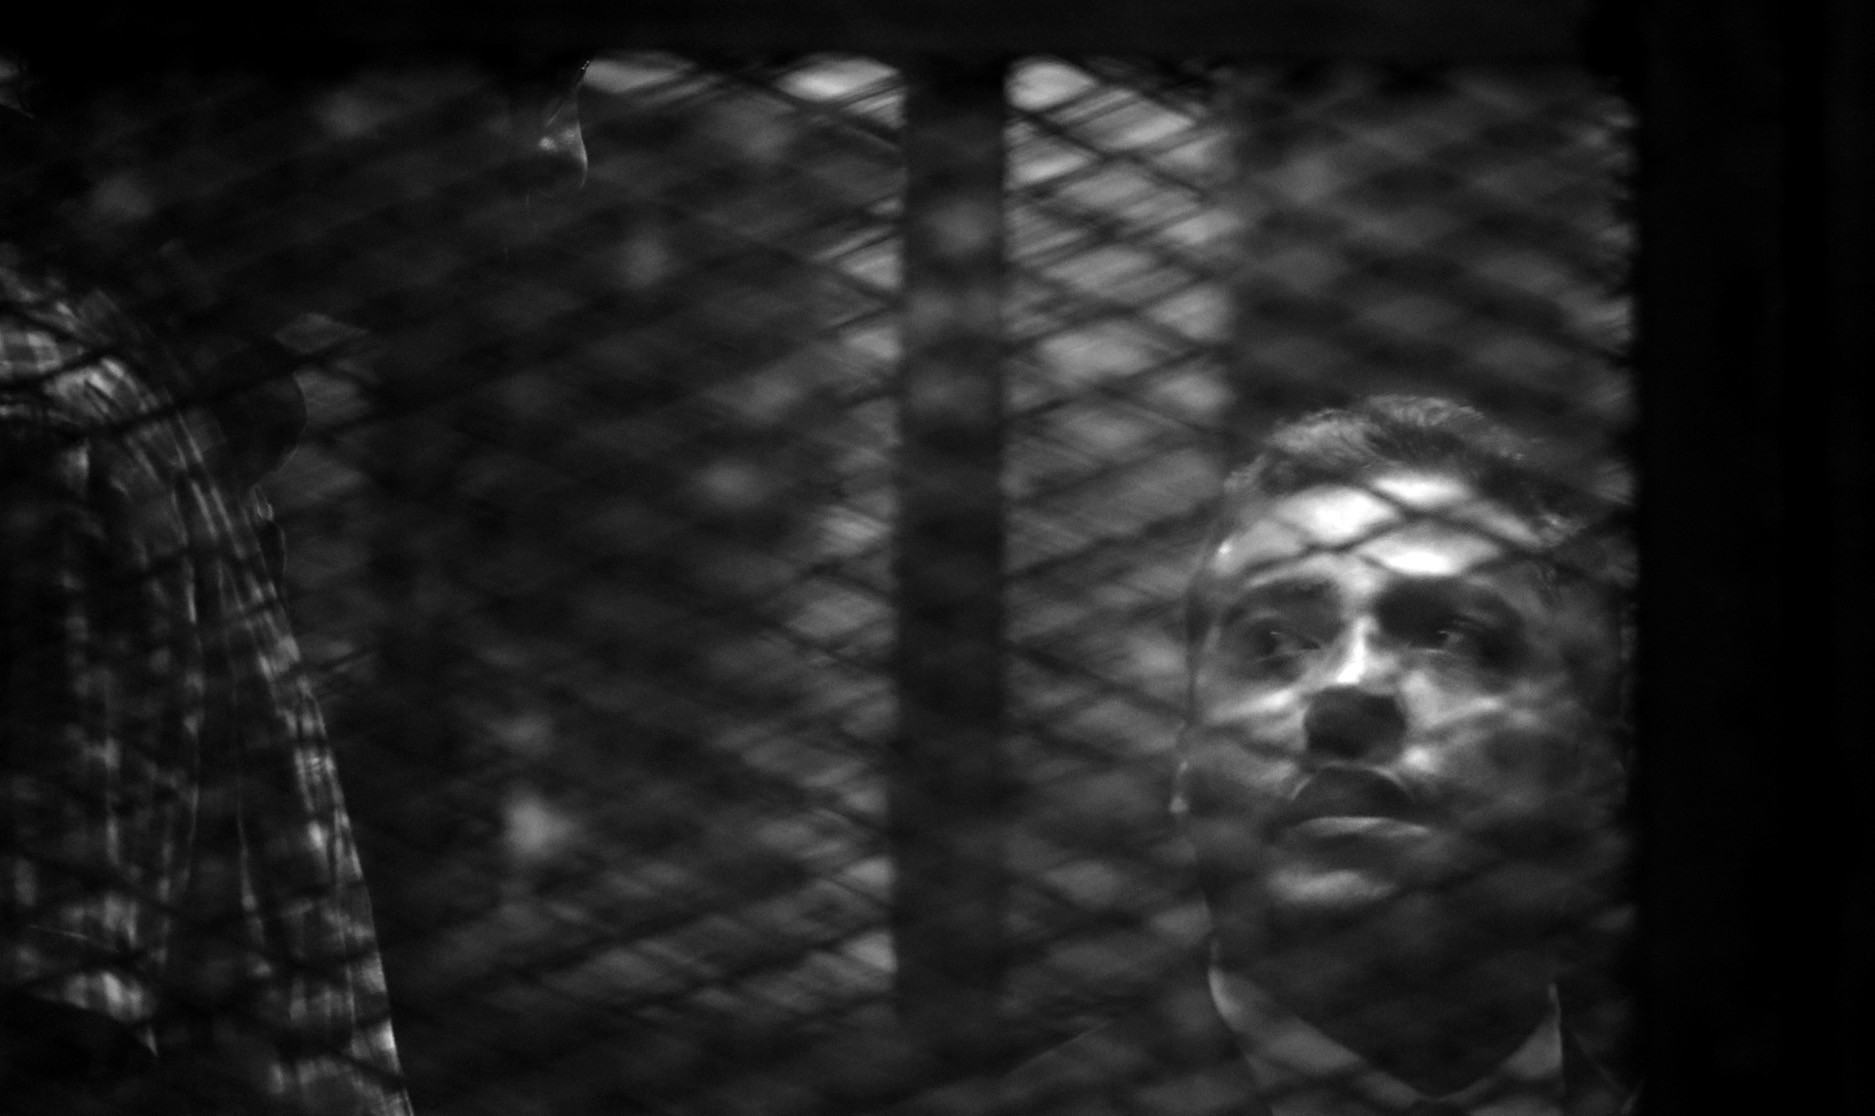 In this Aug. 29 file photo, Canadian Al Jazeera English journalist Mohammed Fahmy listens to his verdict in a soundproof glass cage inside a makeshift courtroom in Tora prison in Cairo, Egypt.